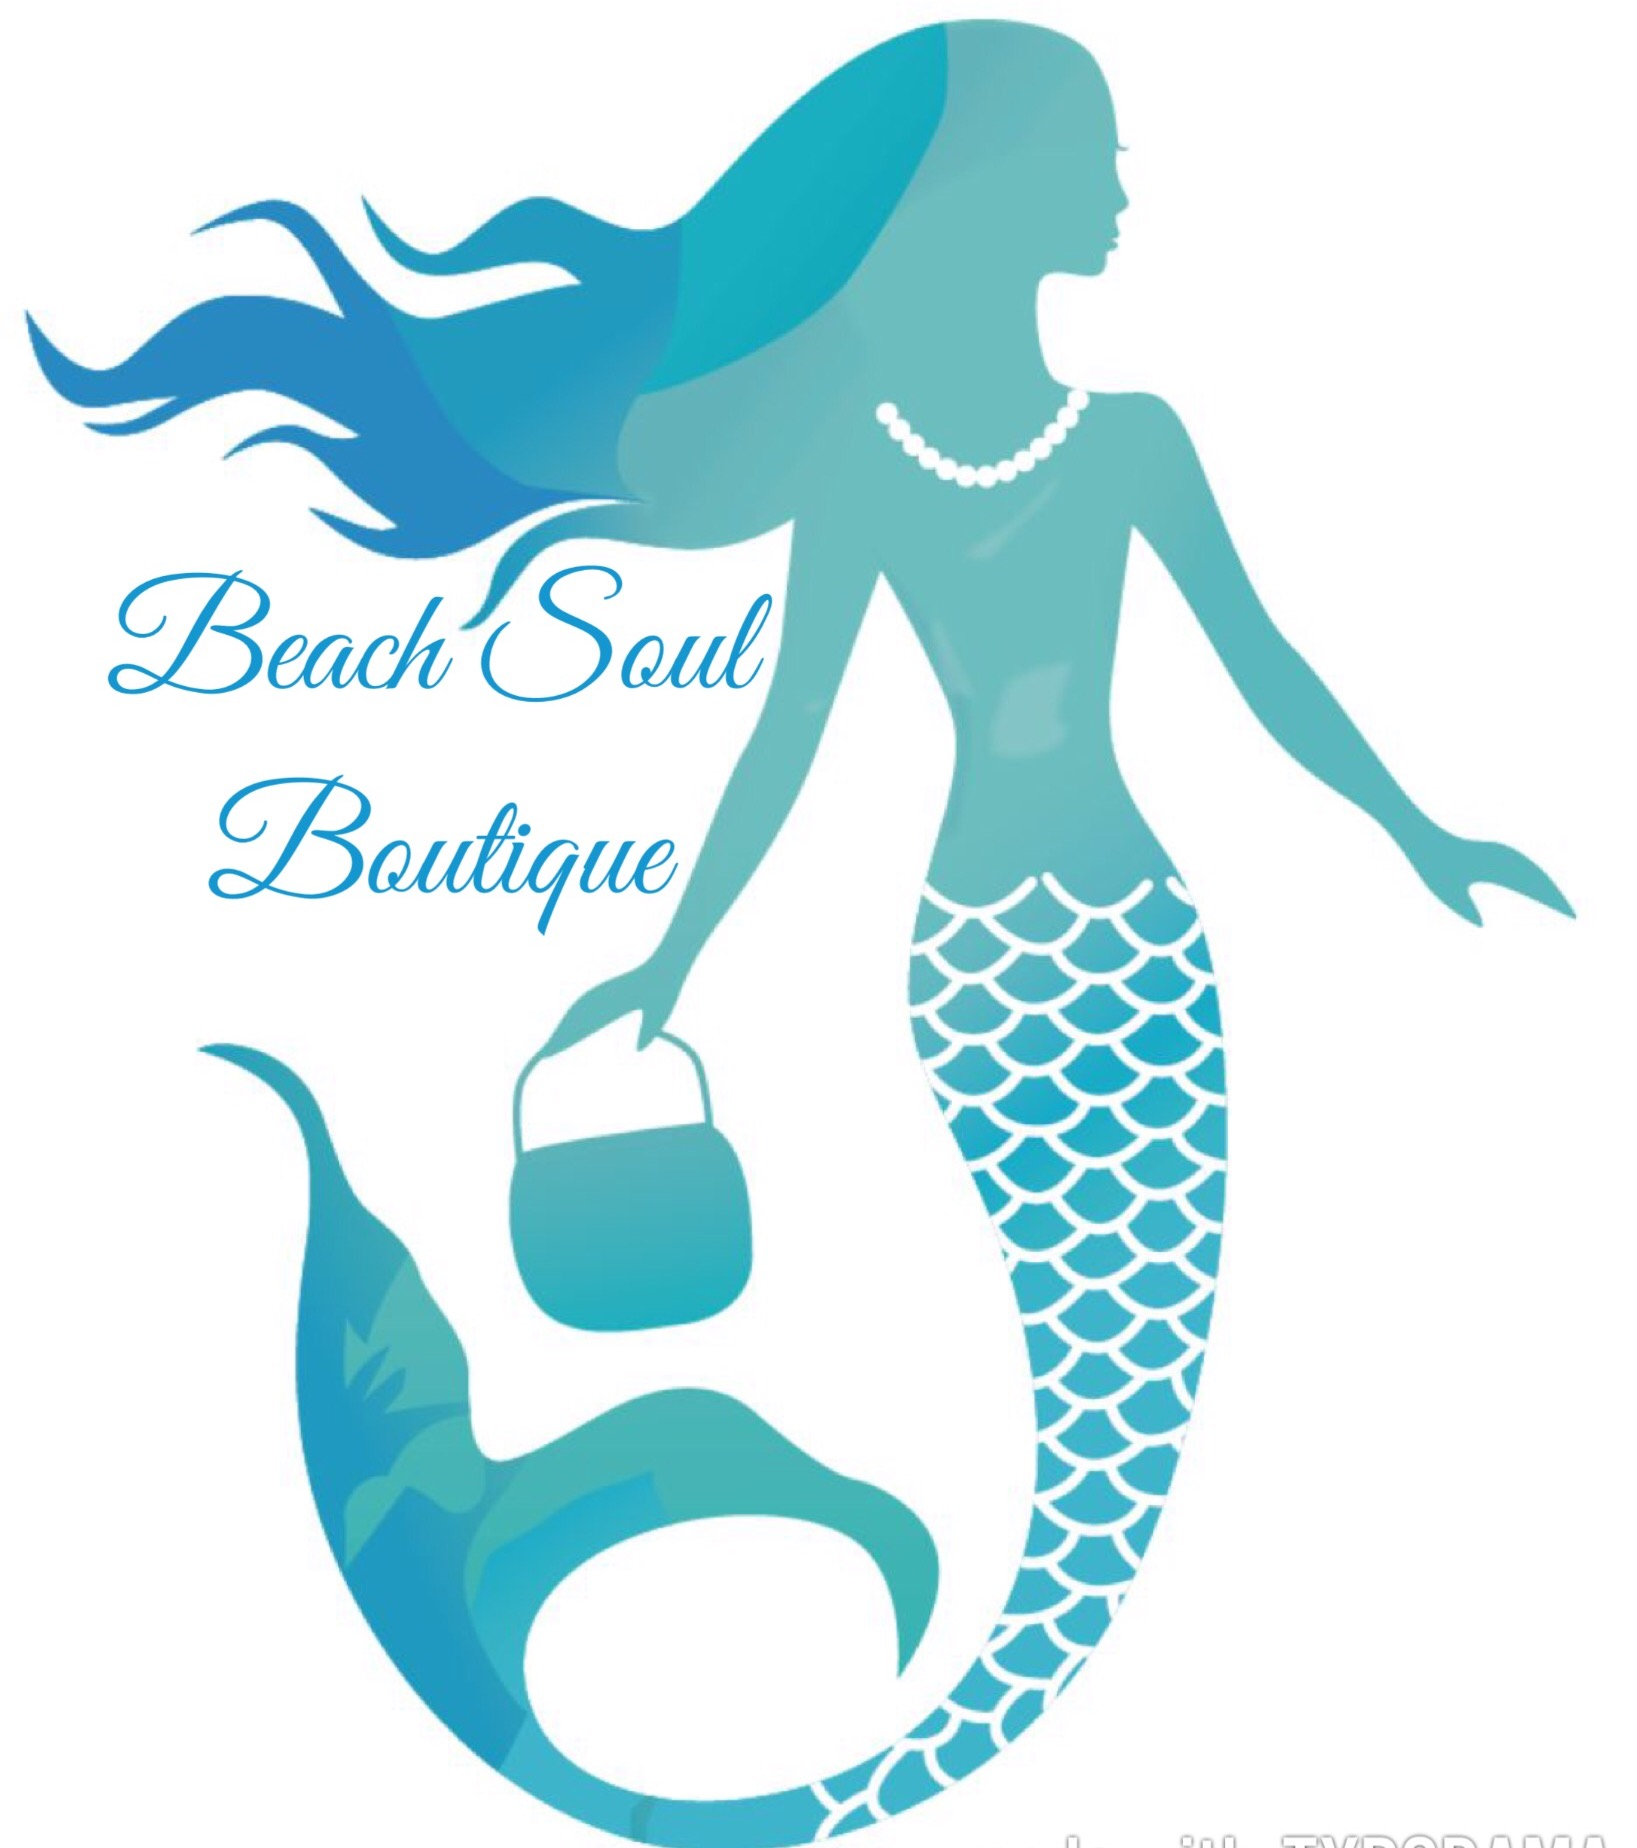 Beach Soul Boutique